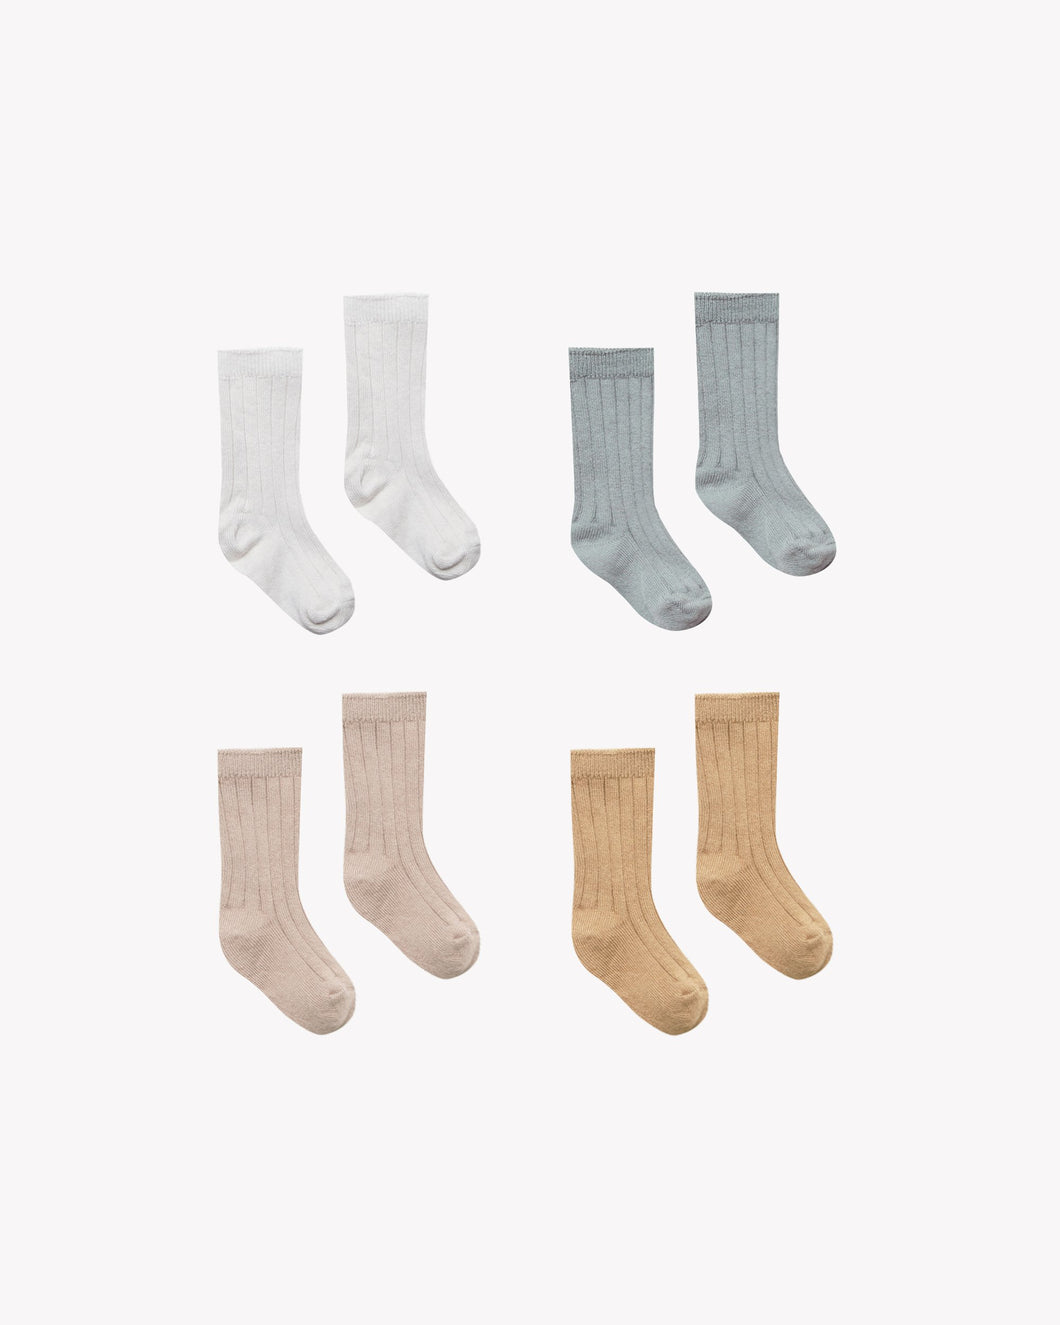 Quincy Mae - Socks 4 Pack Ivory, Dusty Blue, Rose, Honey